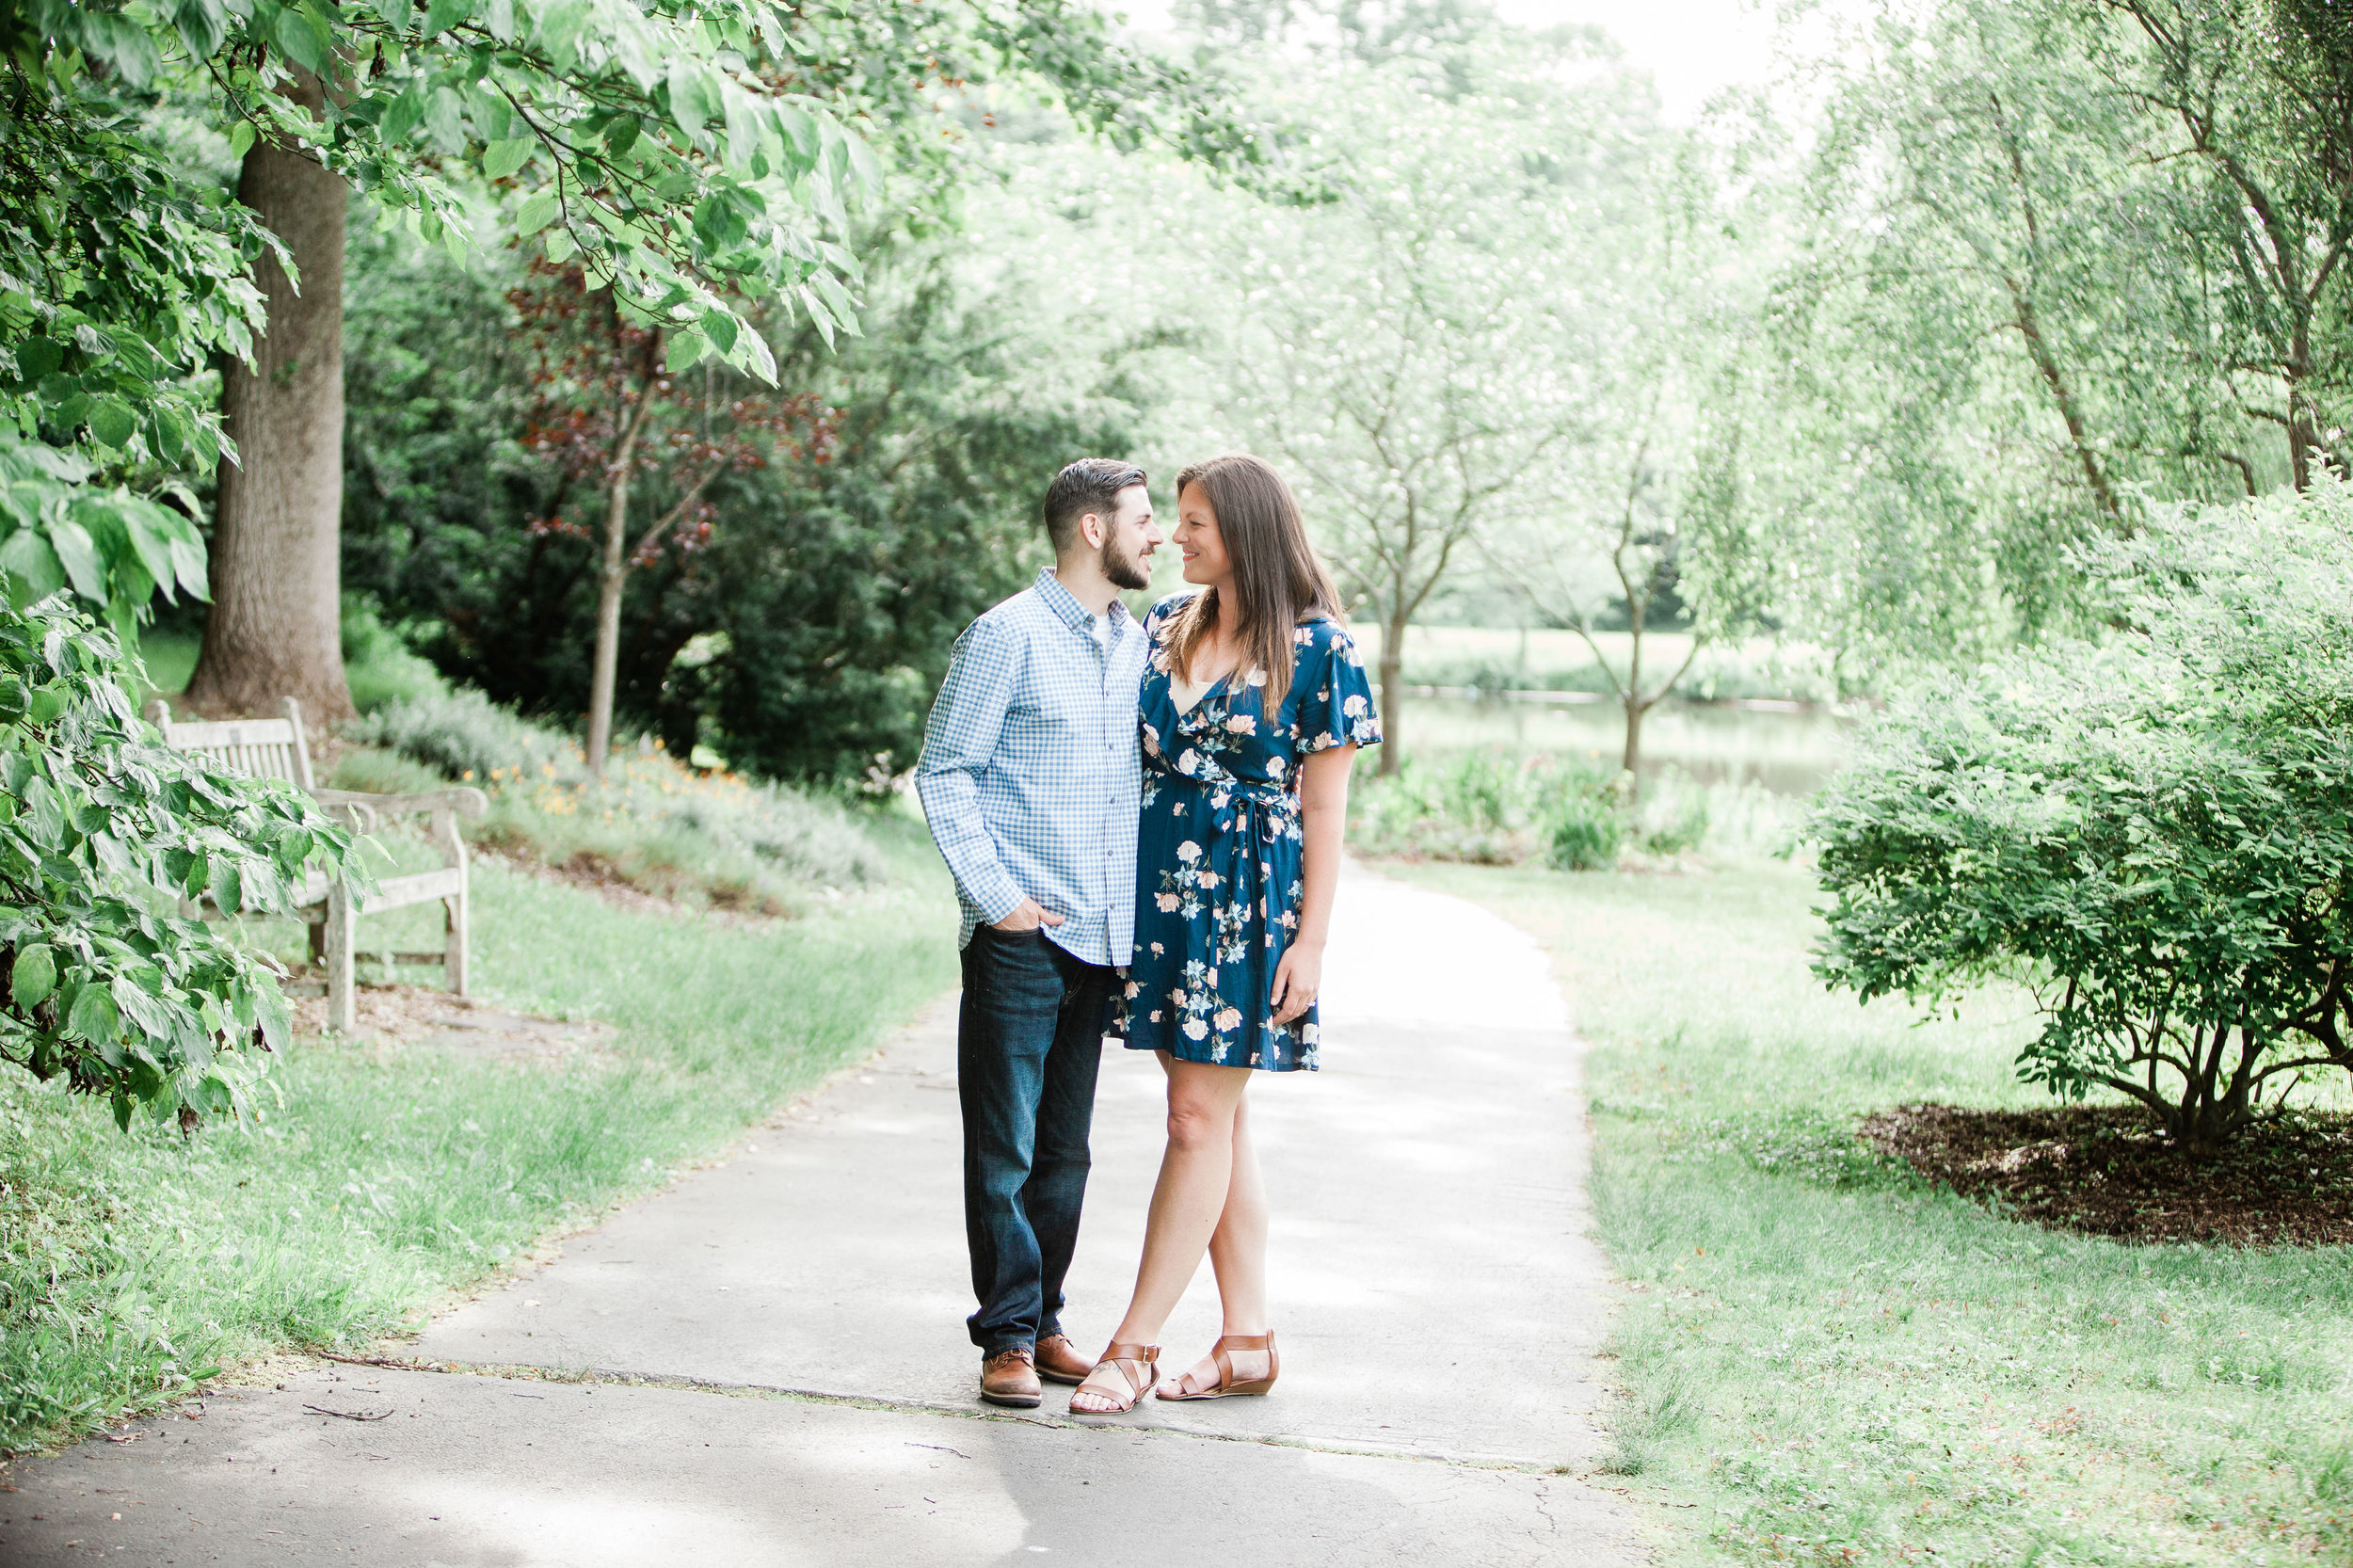 meadowlark_botanical_gardens_engagements-3462.jpg